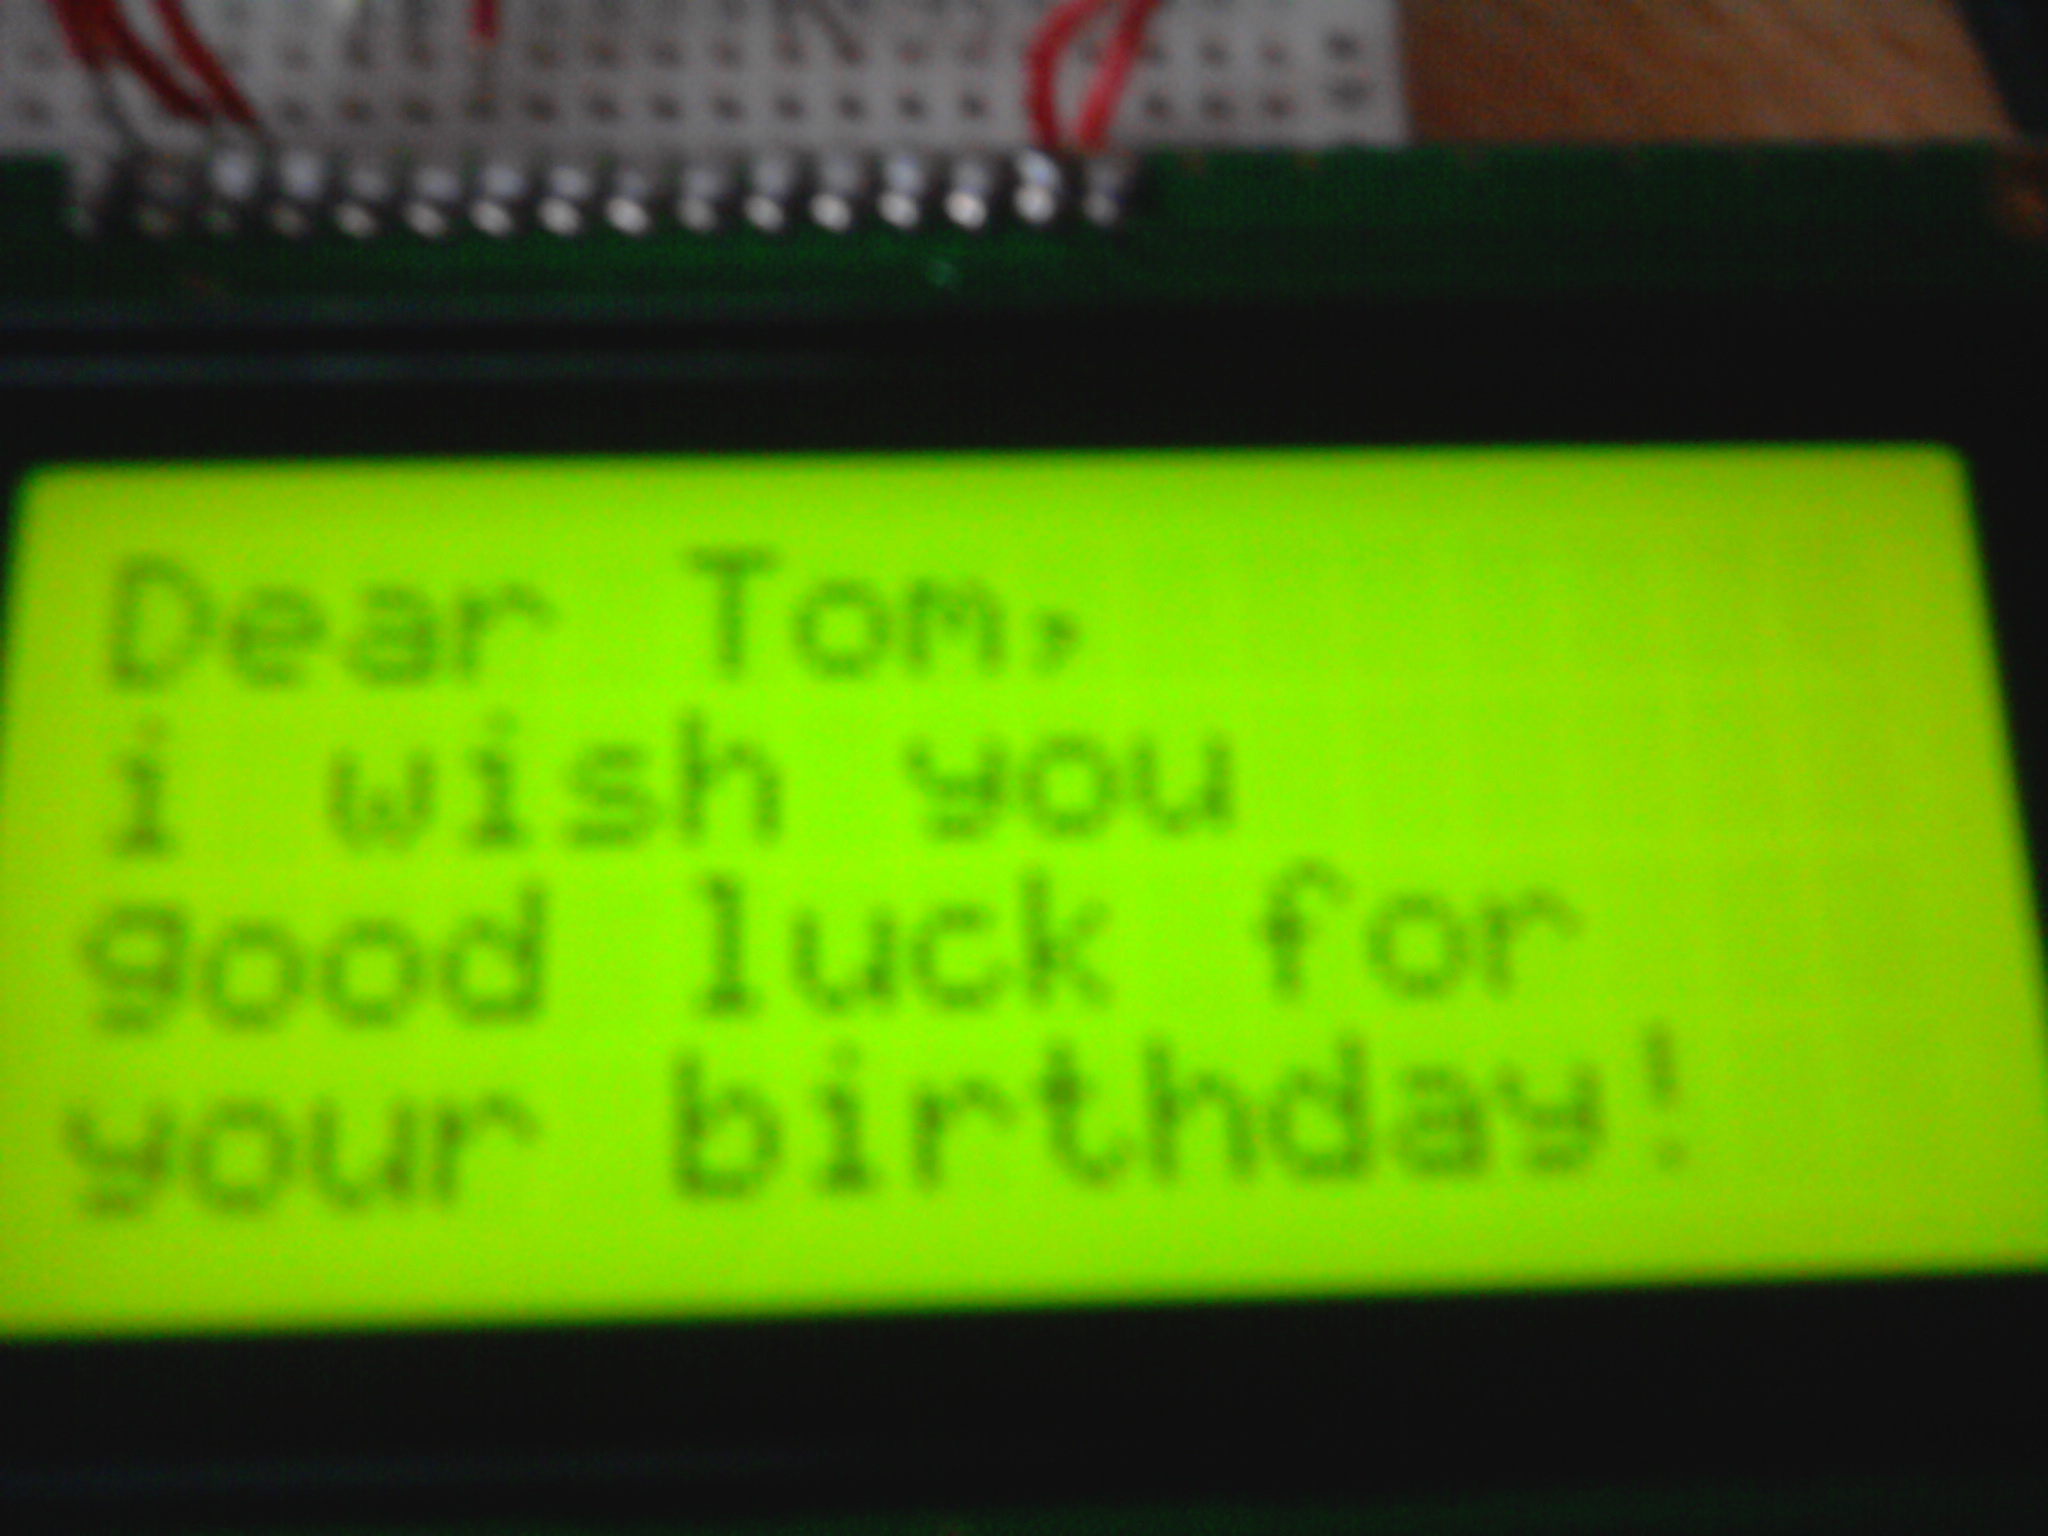 Arduino Lcd Birthday Card Make Can Use The Other Cards This Project For Beginners Good Luck